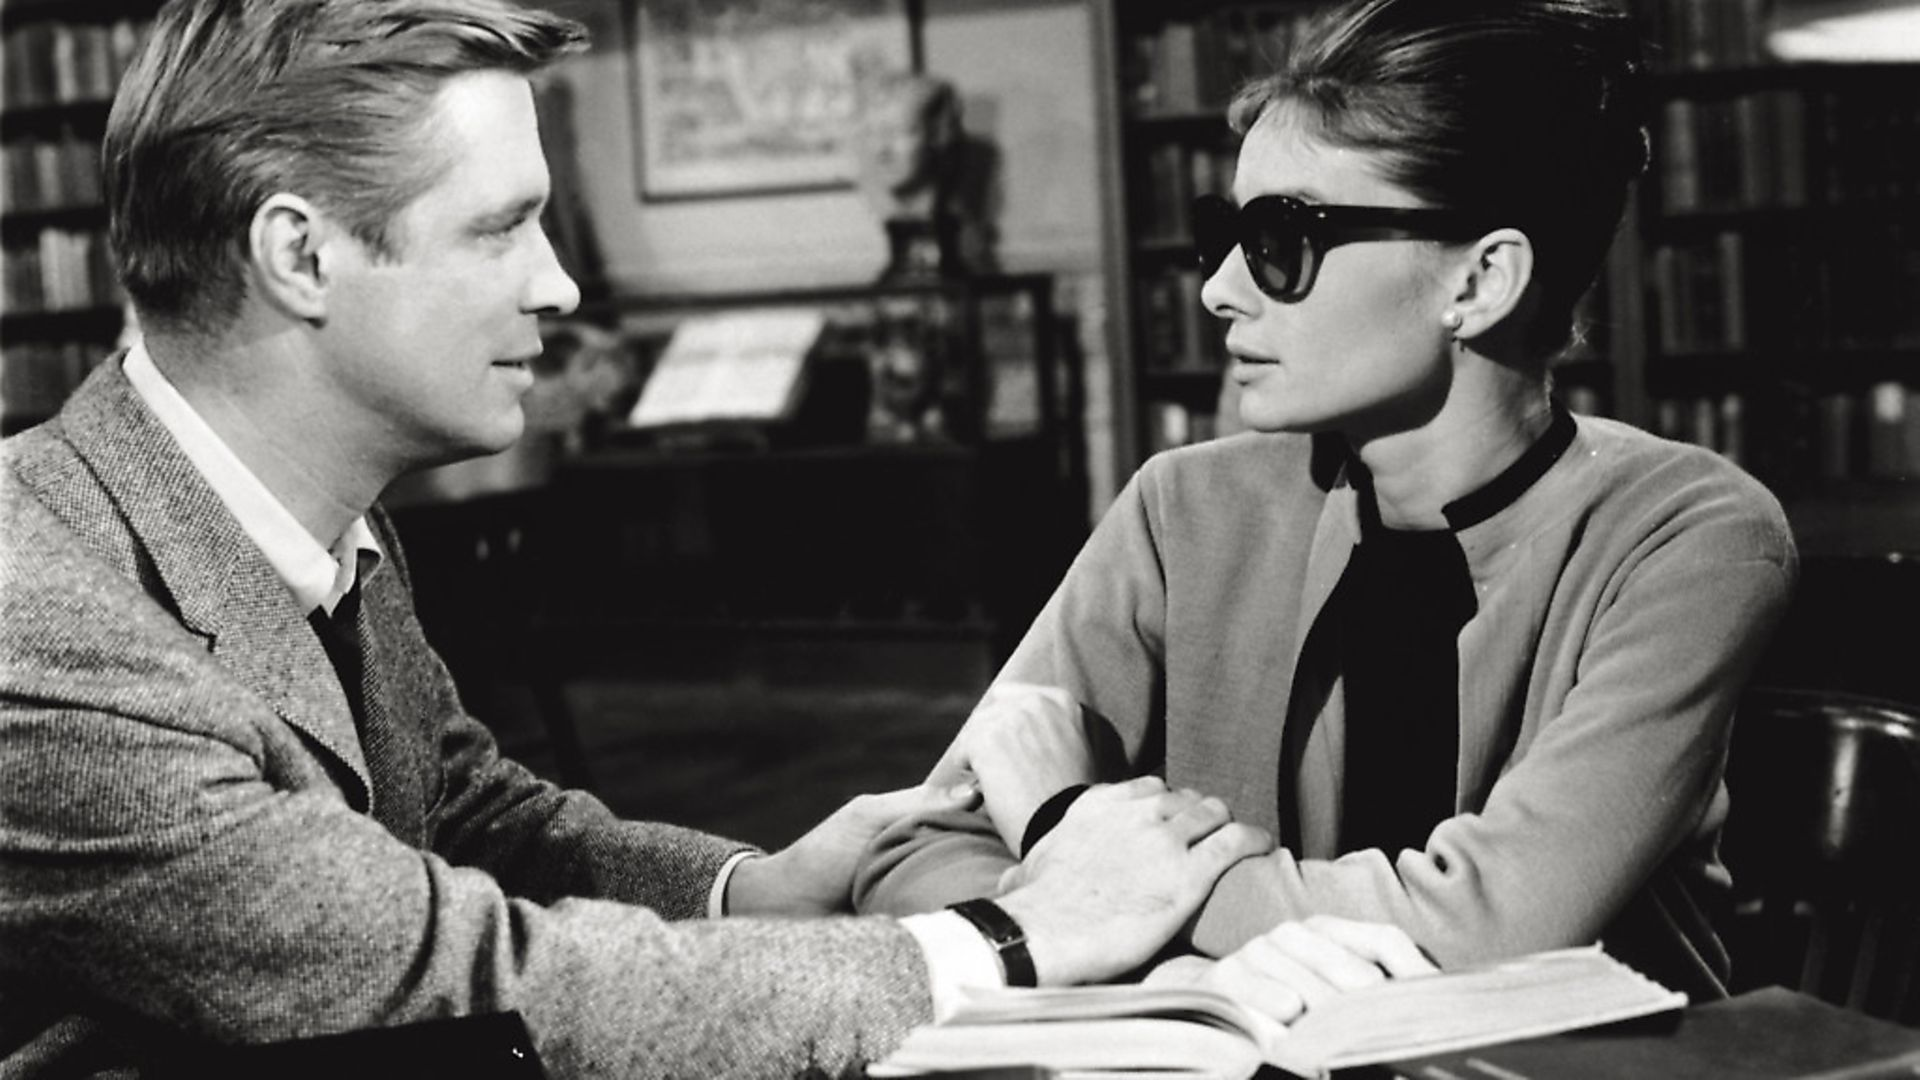 The British actress Audrey Hepburn acting along American actor George Peppard in the film 'Breakfast at Tiffany's'. USA, 1960 (Photo by Mondadori via Getty Images) - Credit: Mondadori via Getty Images